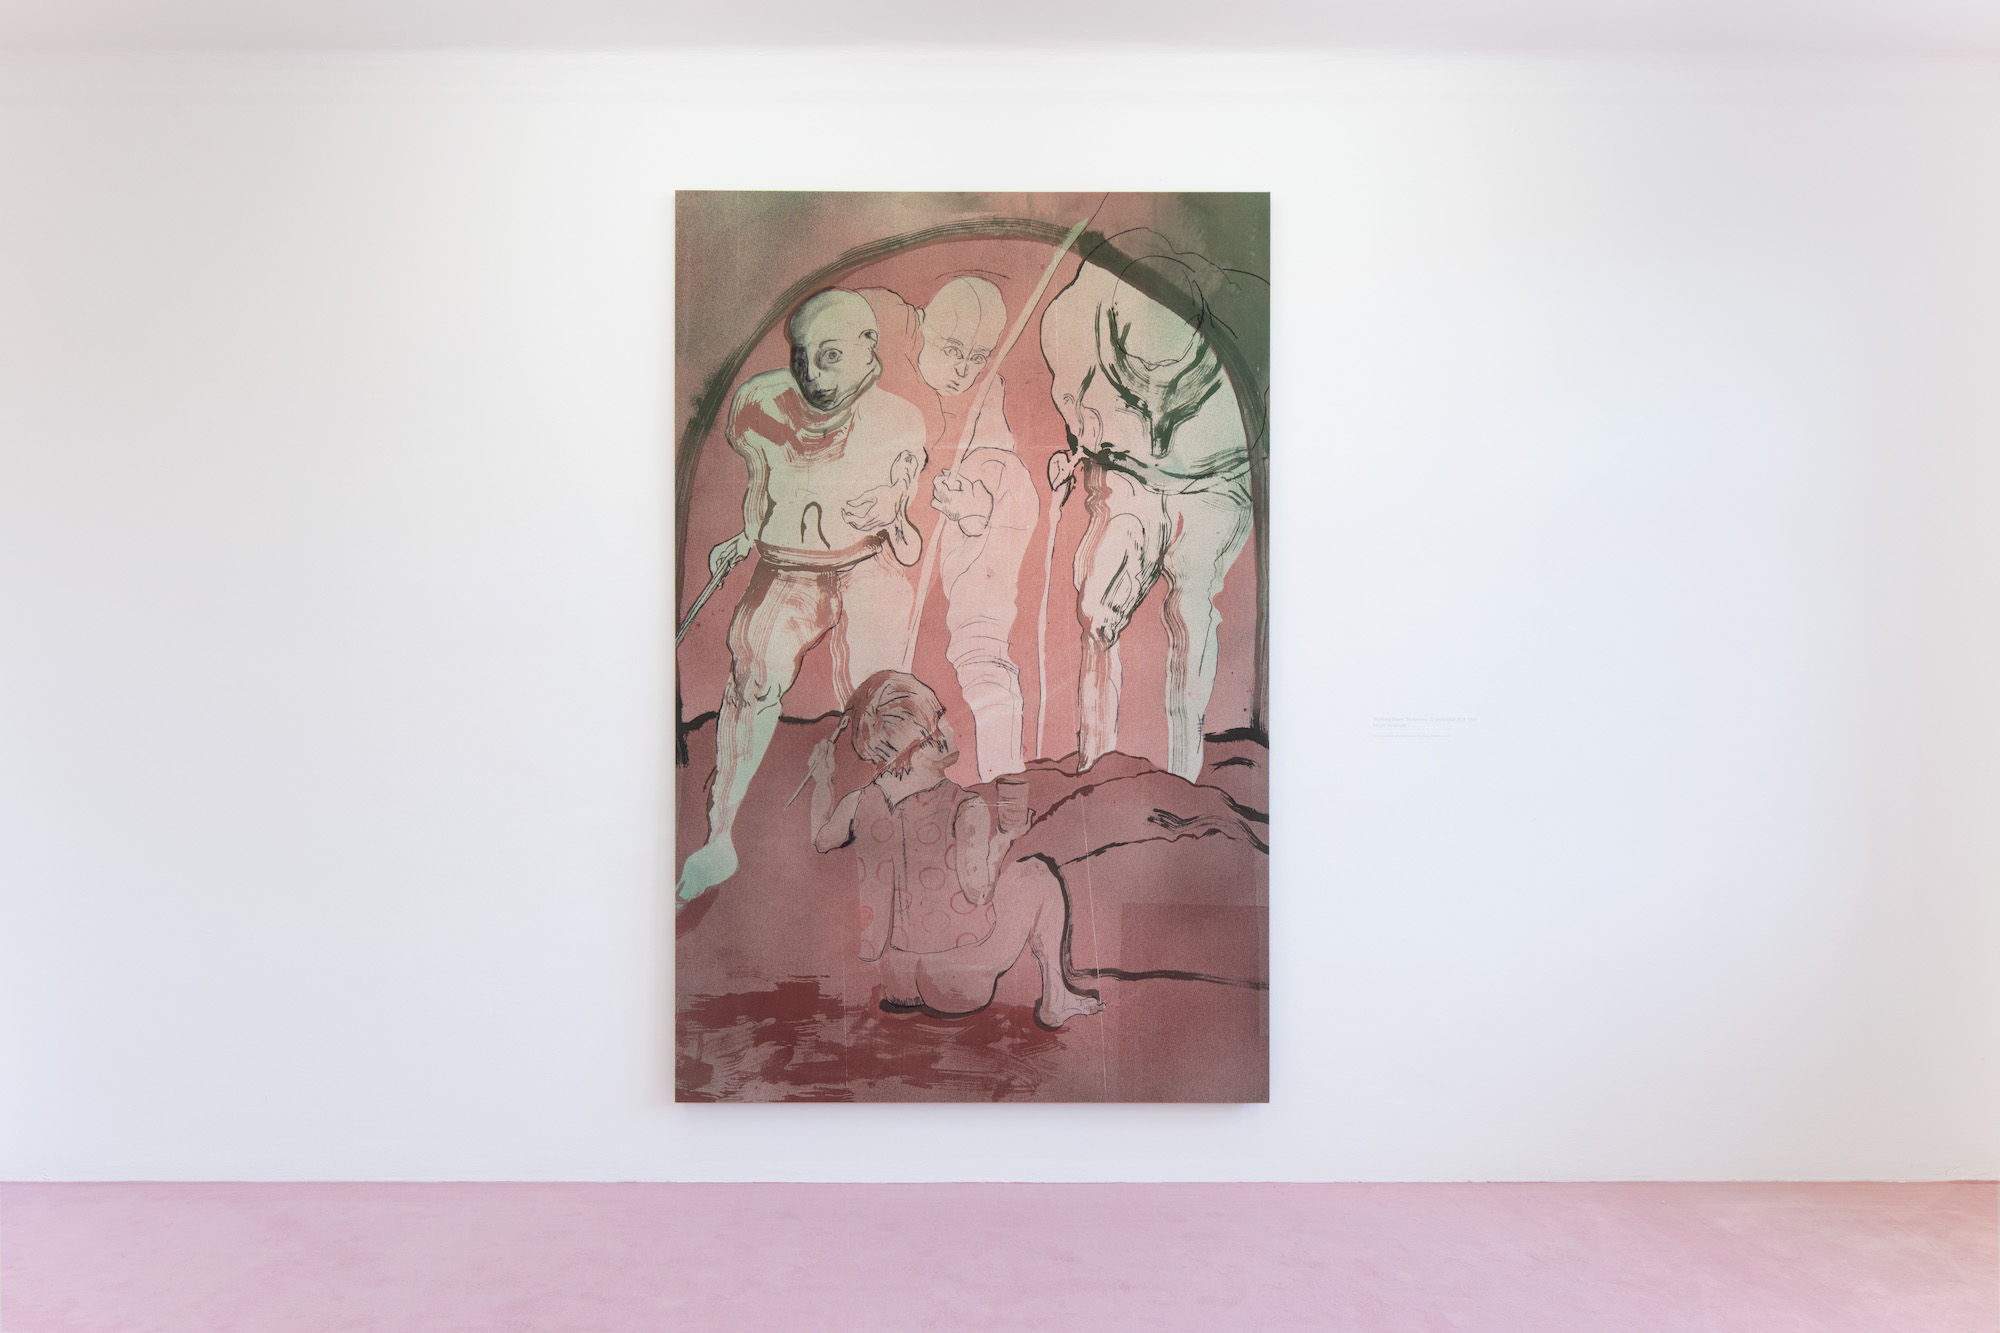 Installation view: Matthew Lutz-Kinoy. Window to the Clouds; Salon Berlin, Museum Frieder Burda Matthew Lutz-Kinoy, Lectures of Burle Marx, 2020, Acrylic and charcoal on canvas, 160 x 255 cm. Courtesy of the artist and Mendes Wood DM São Paulo, New York and Brussels; Photo: Thomas Bruns